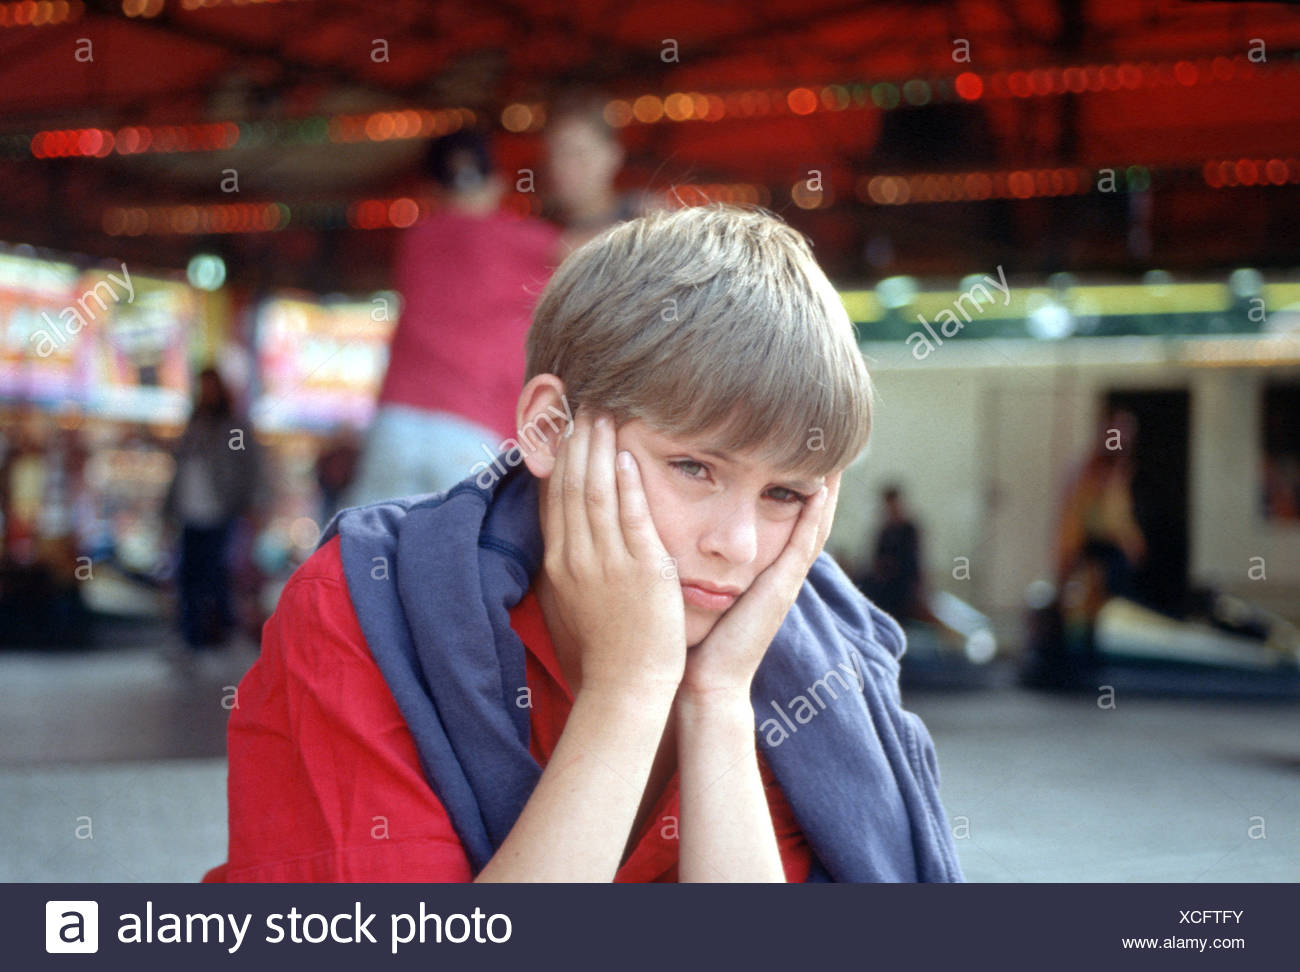 Depressed boy at fairground Stock Photo